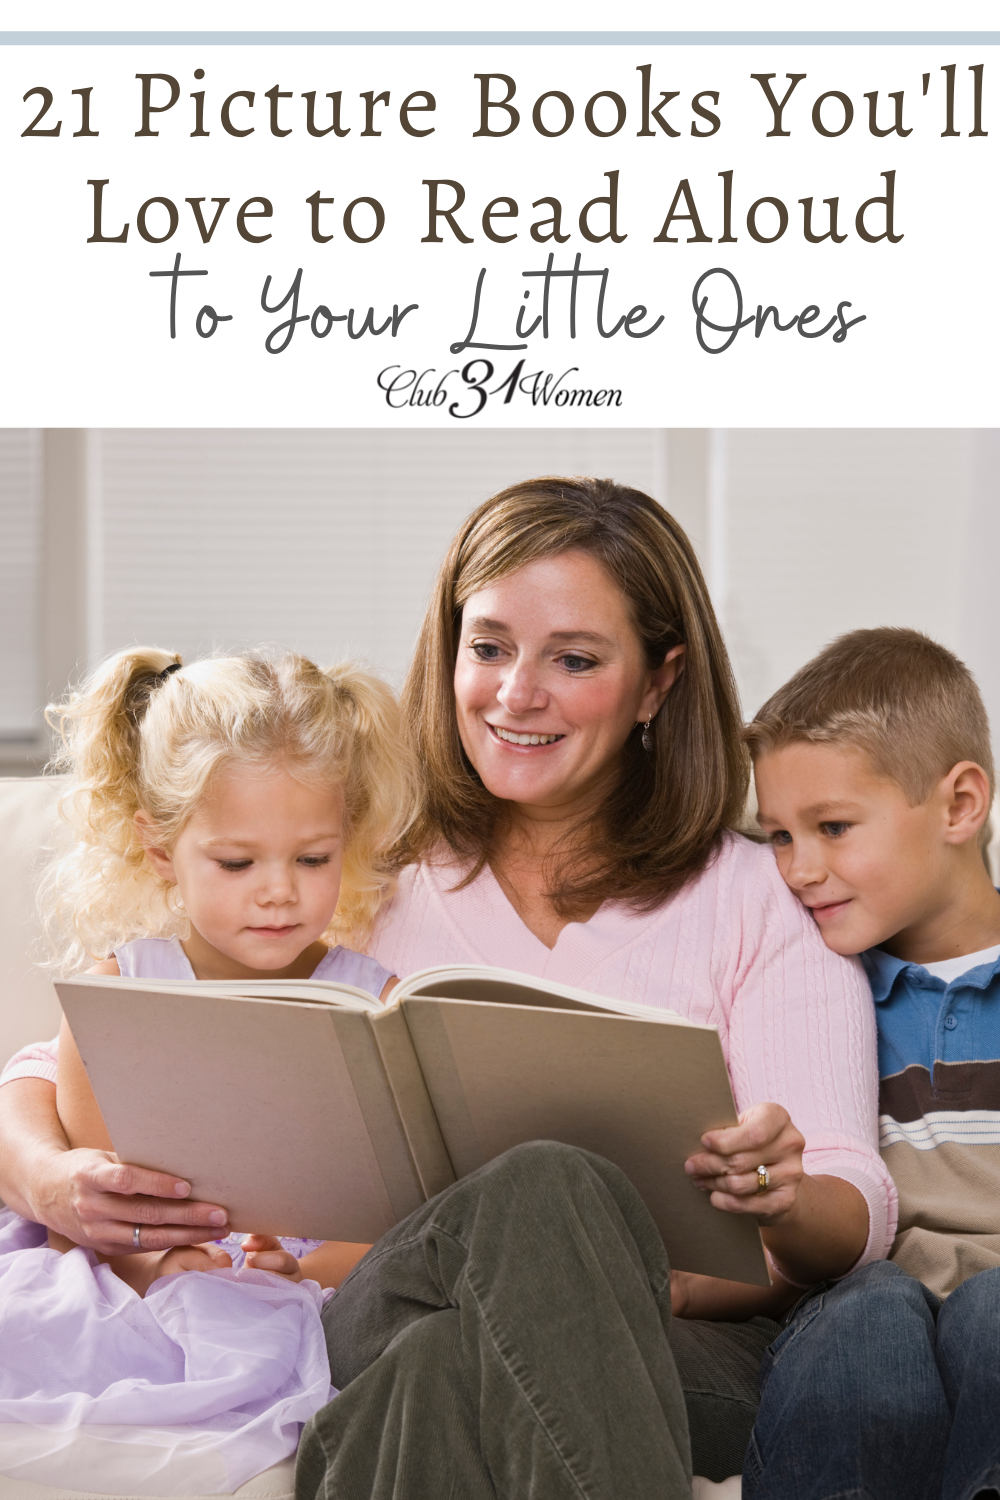 There are many picture books out there to choose from and to narrow it down, here is a great list of favorites to read aloud to your littles! via @Club31Women